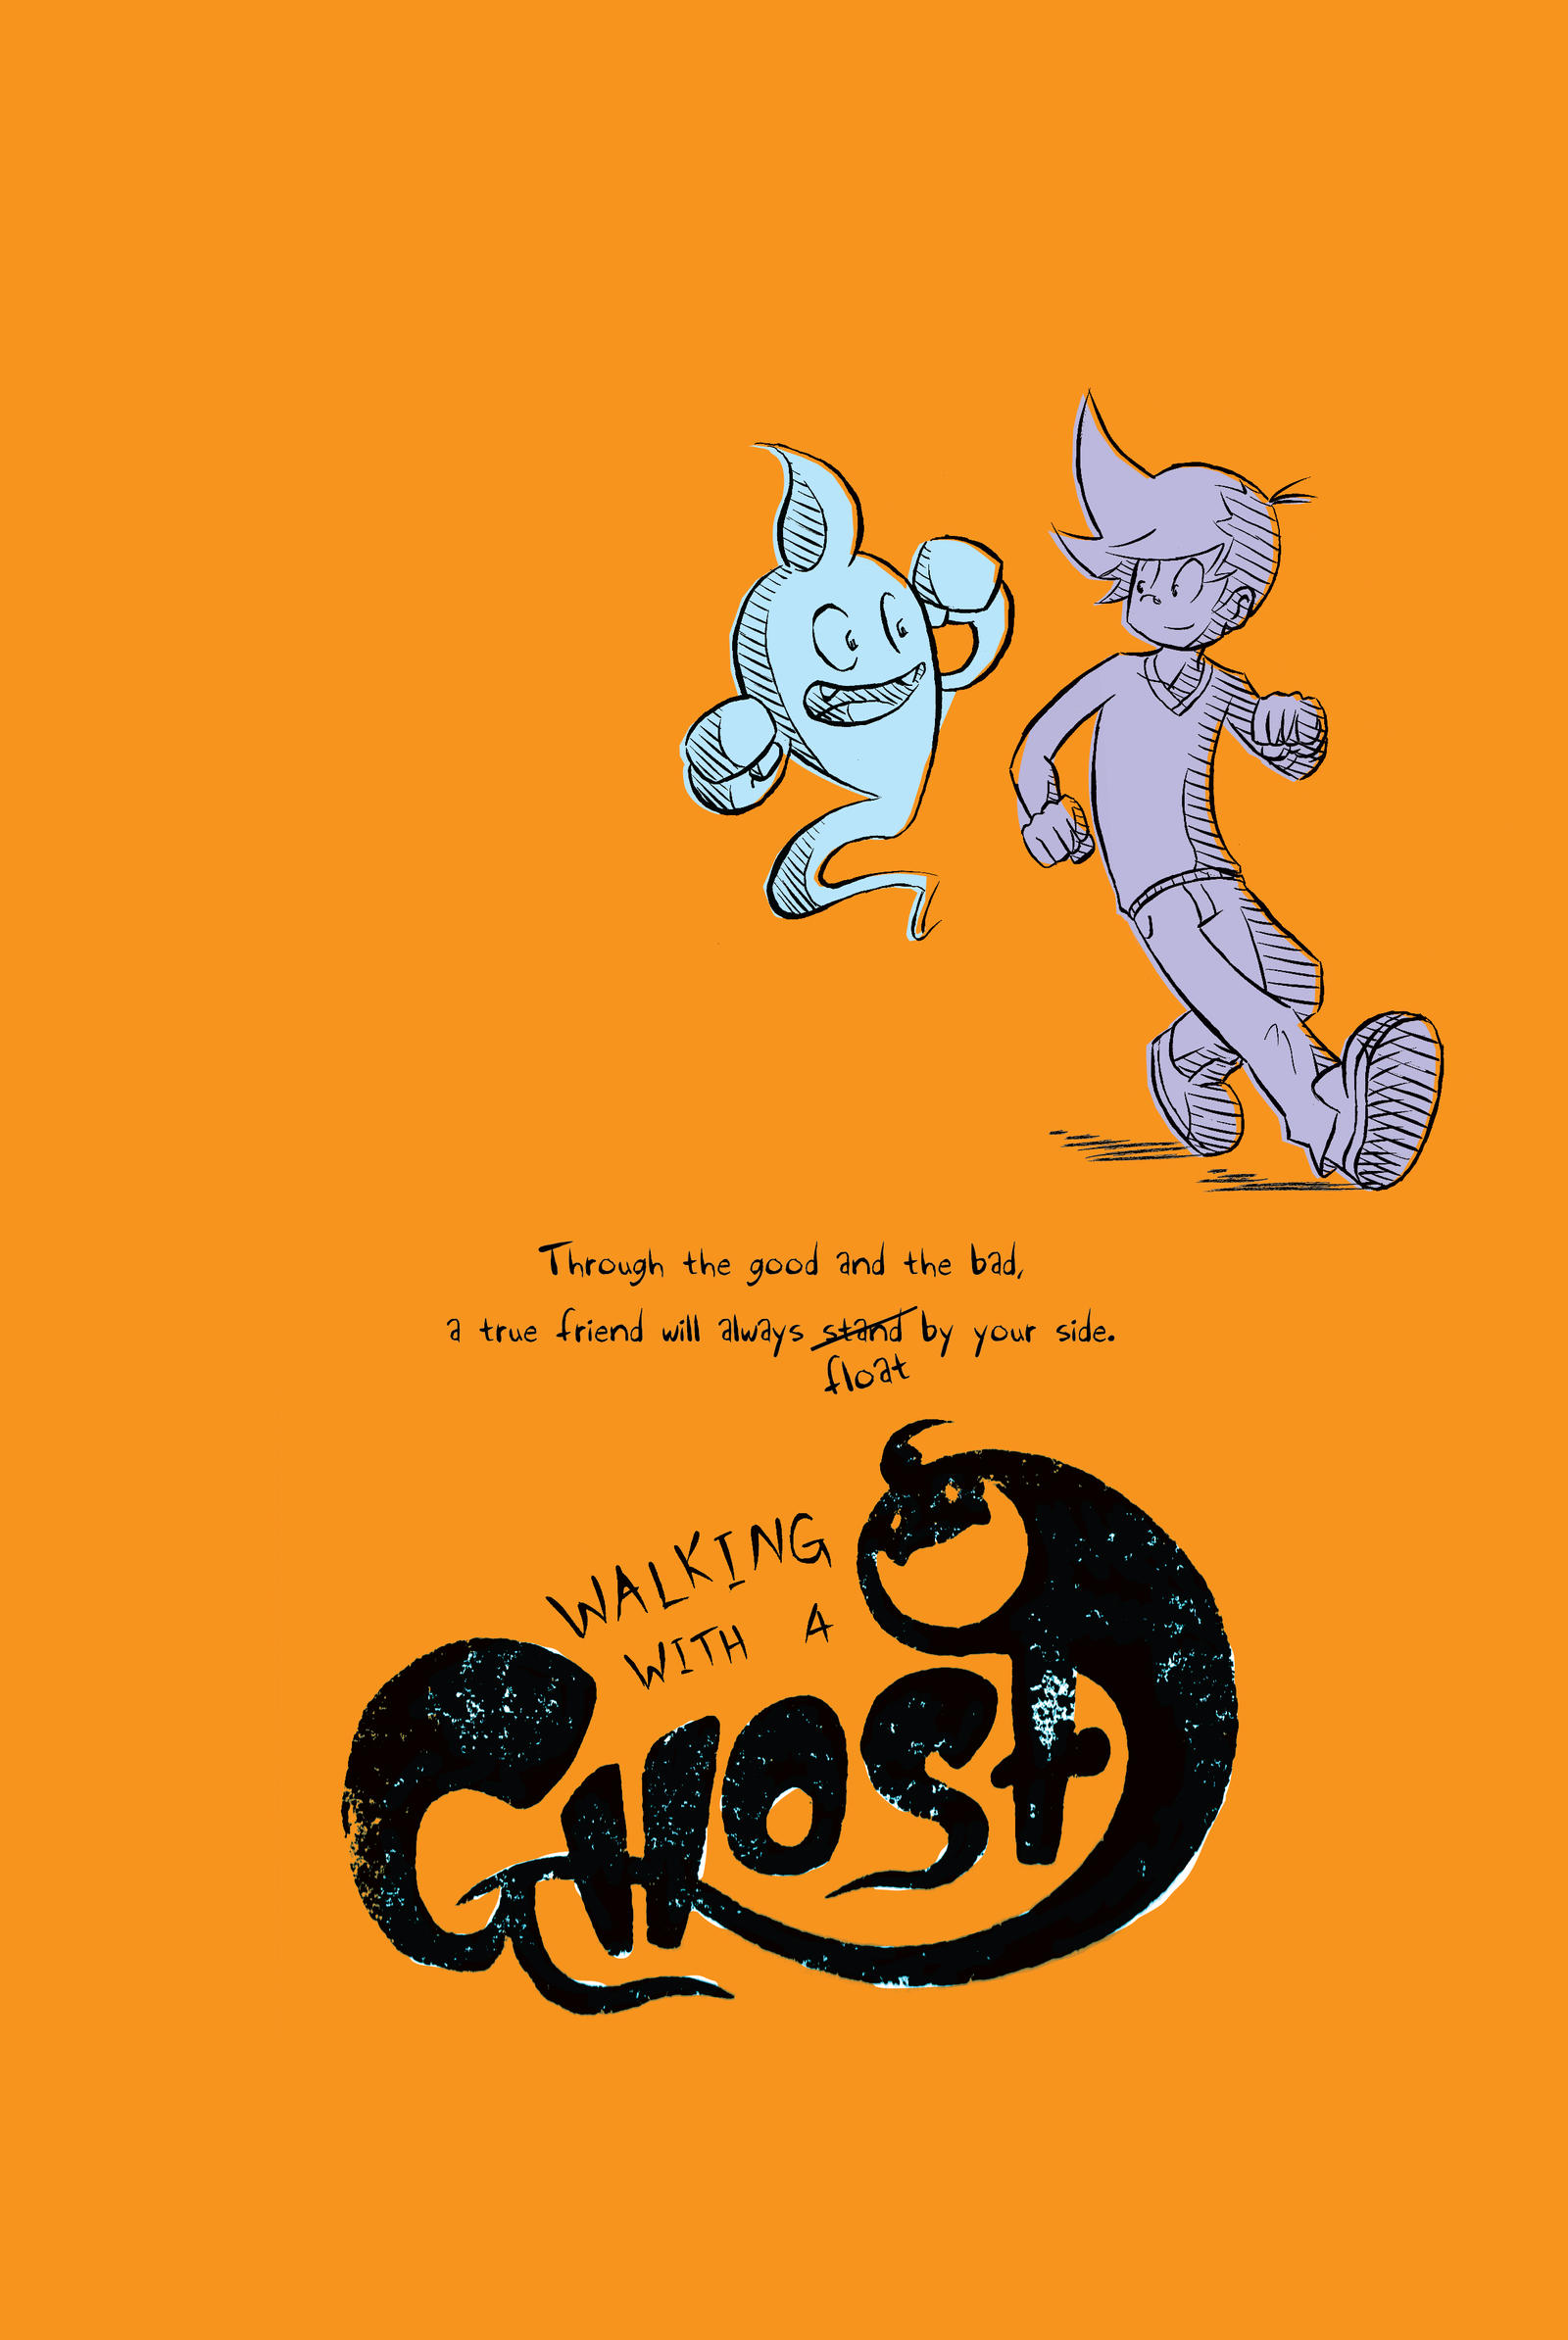 Walking With A Ghost promo Poster by charliegaines